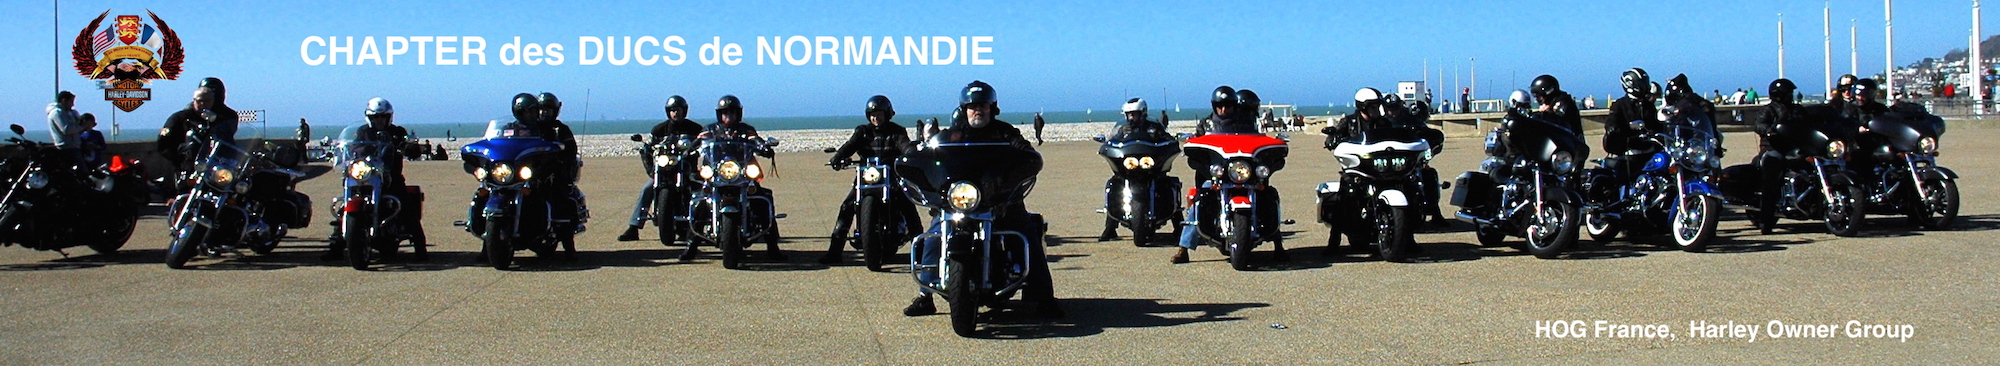 Ducs de Normandie Chapter France